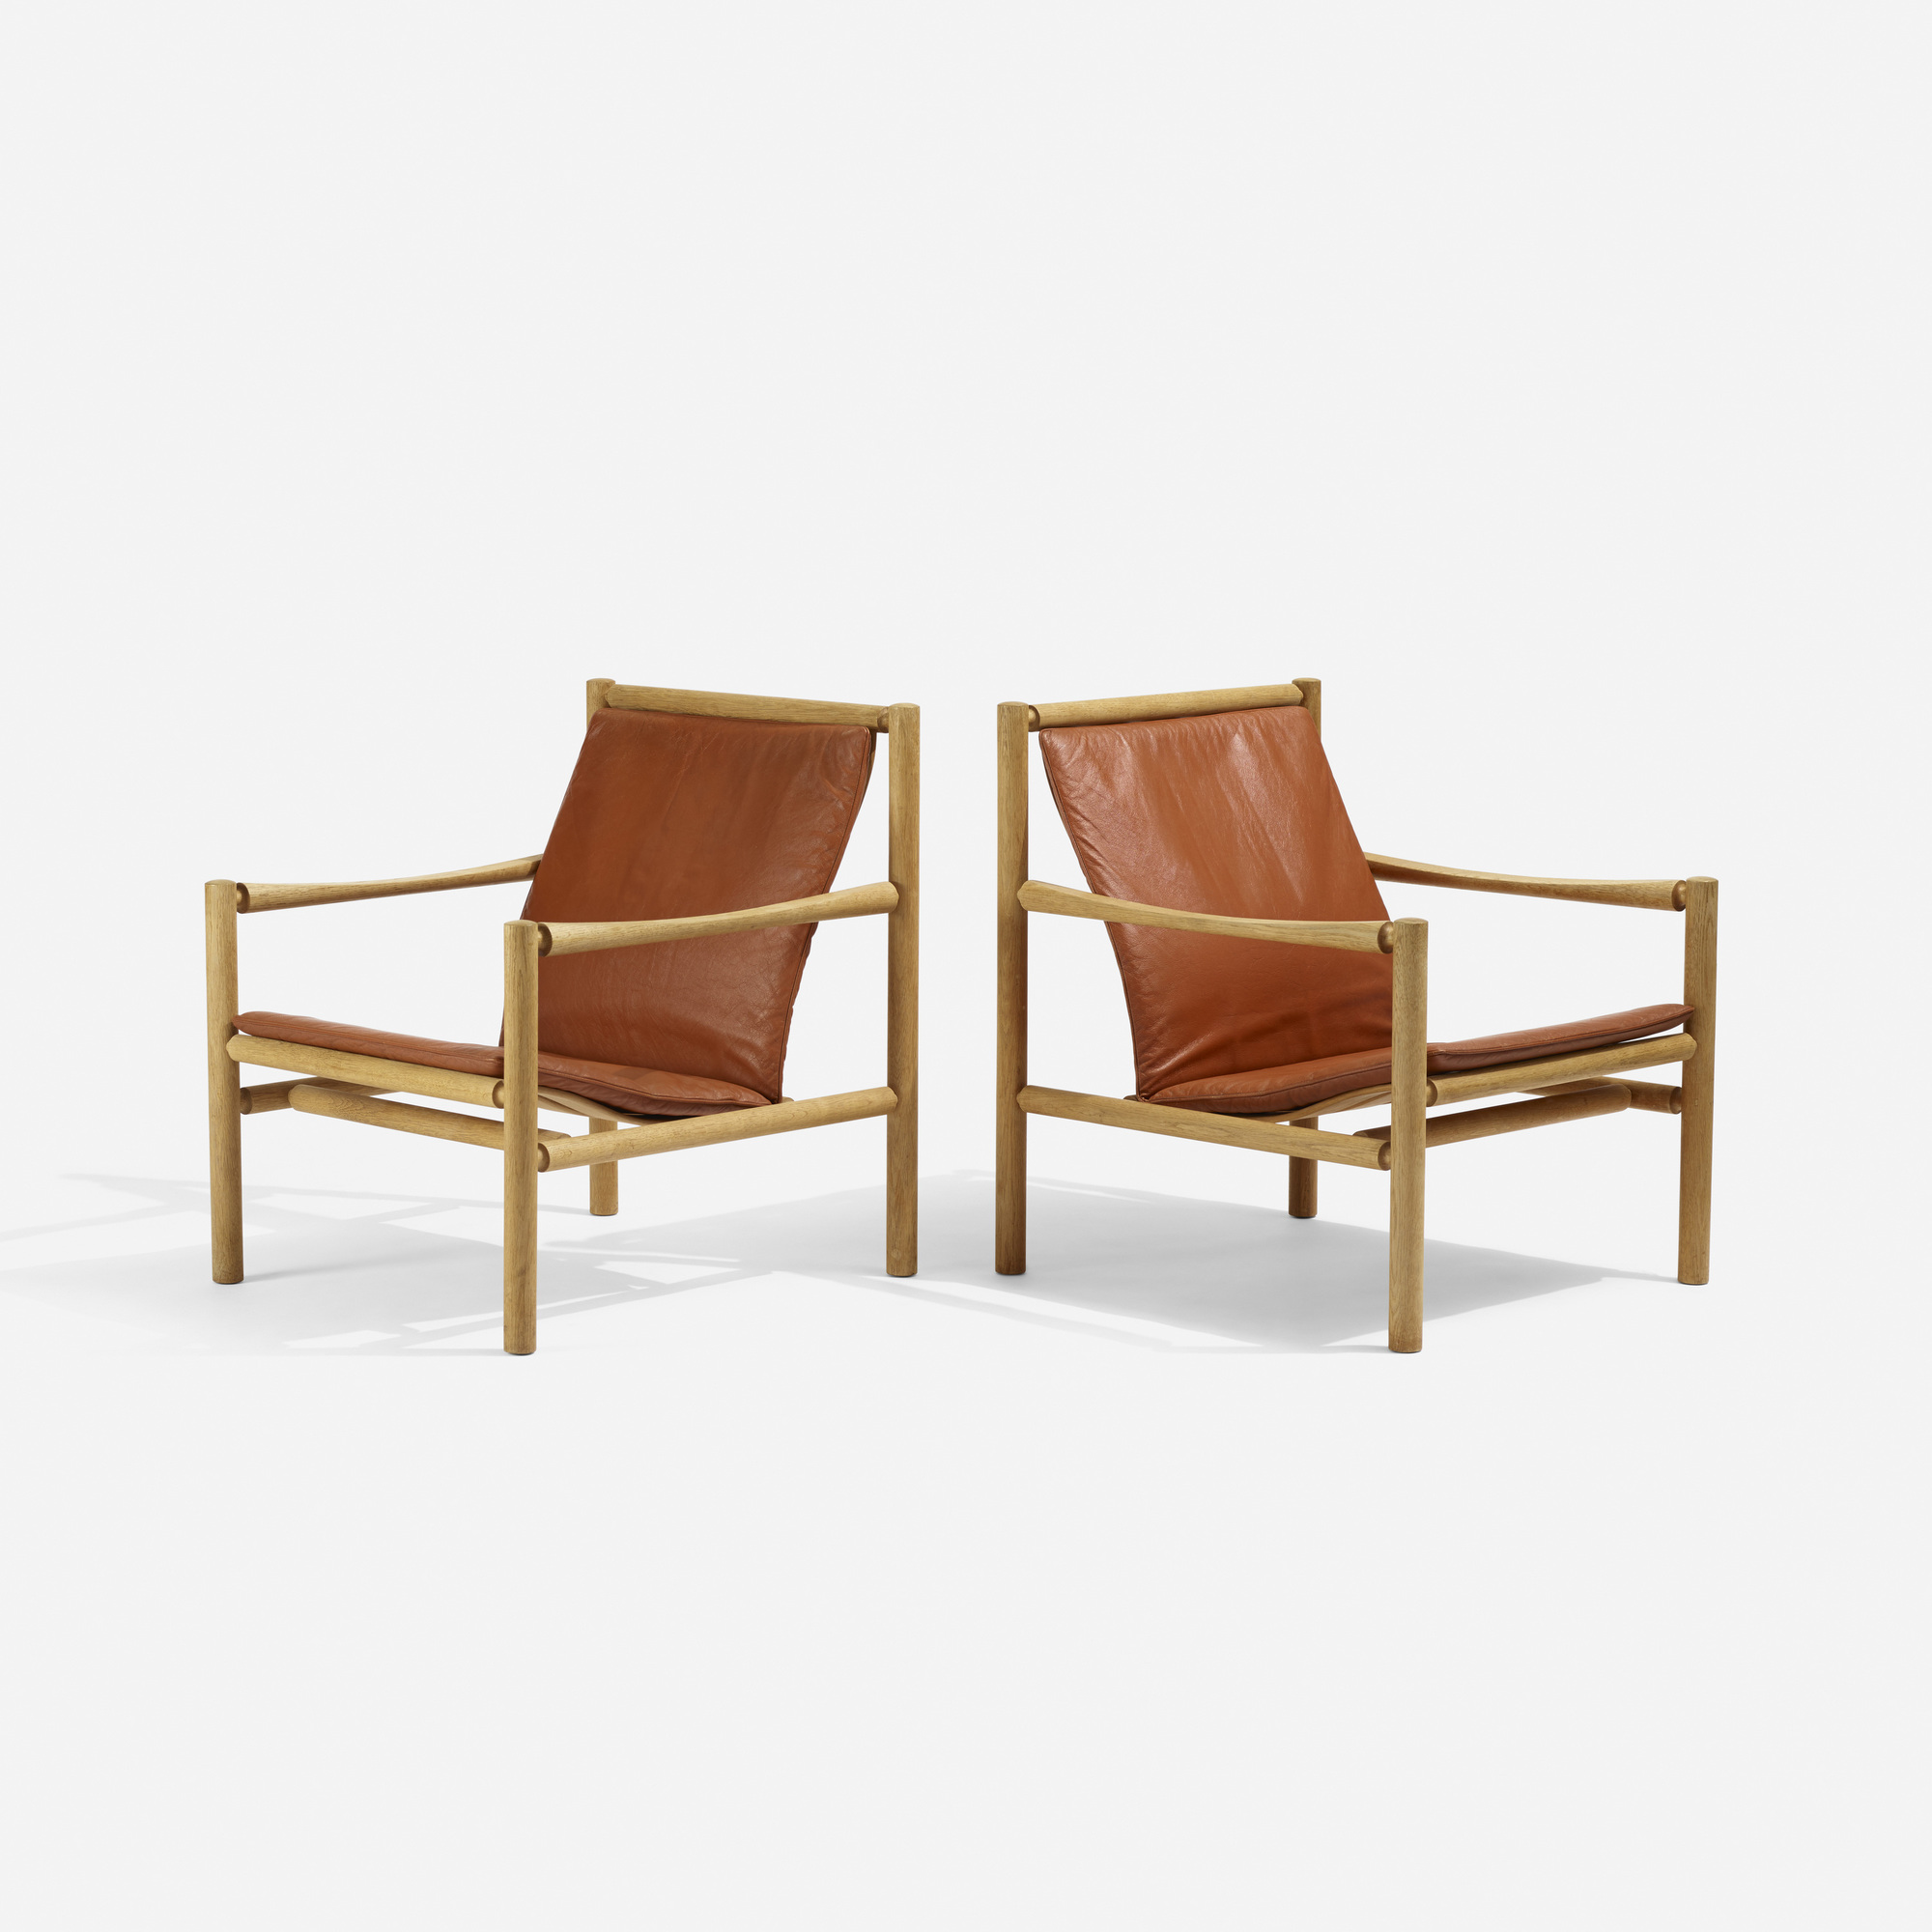 189: Jorgen Nilsson / lounge chairs, pair (3 of 4)